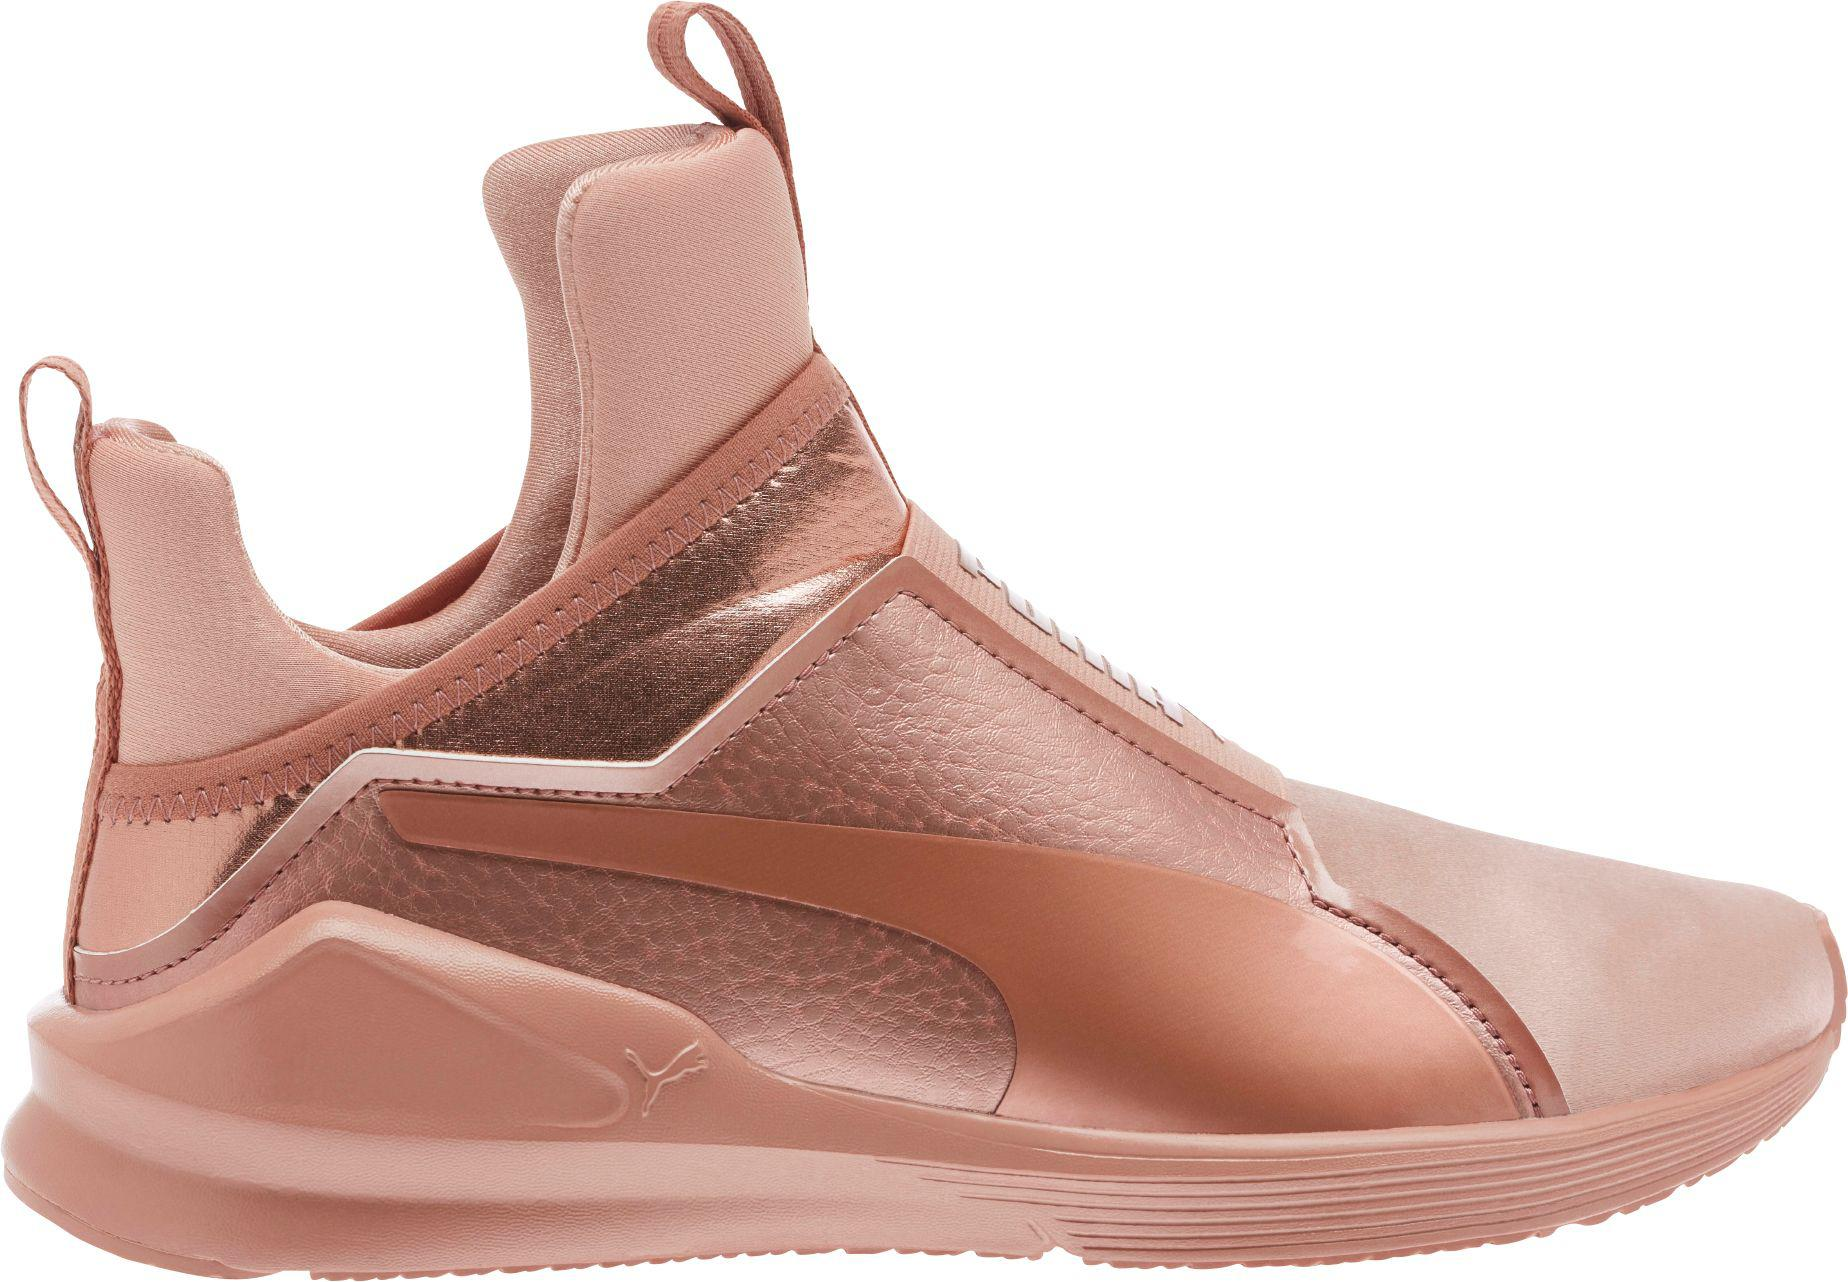 8cd8a5bf8df4 Lyst - PUMA Fierce Velvet Rope Shoes in Pink